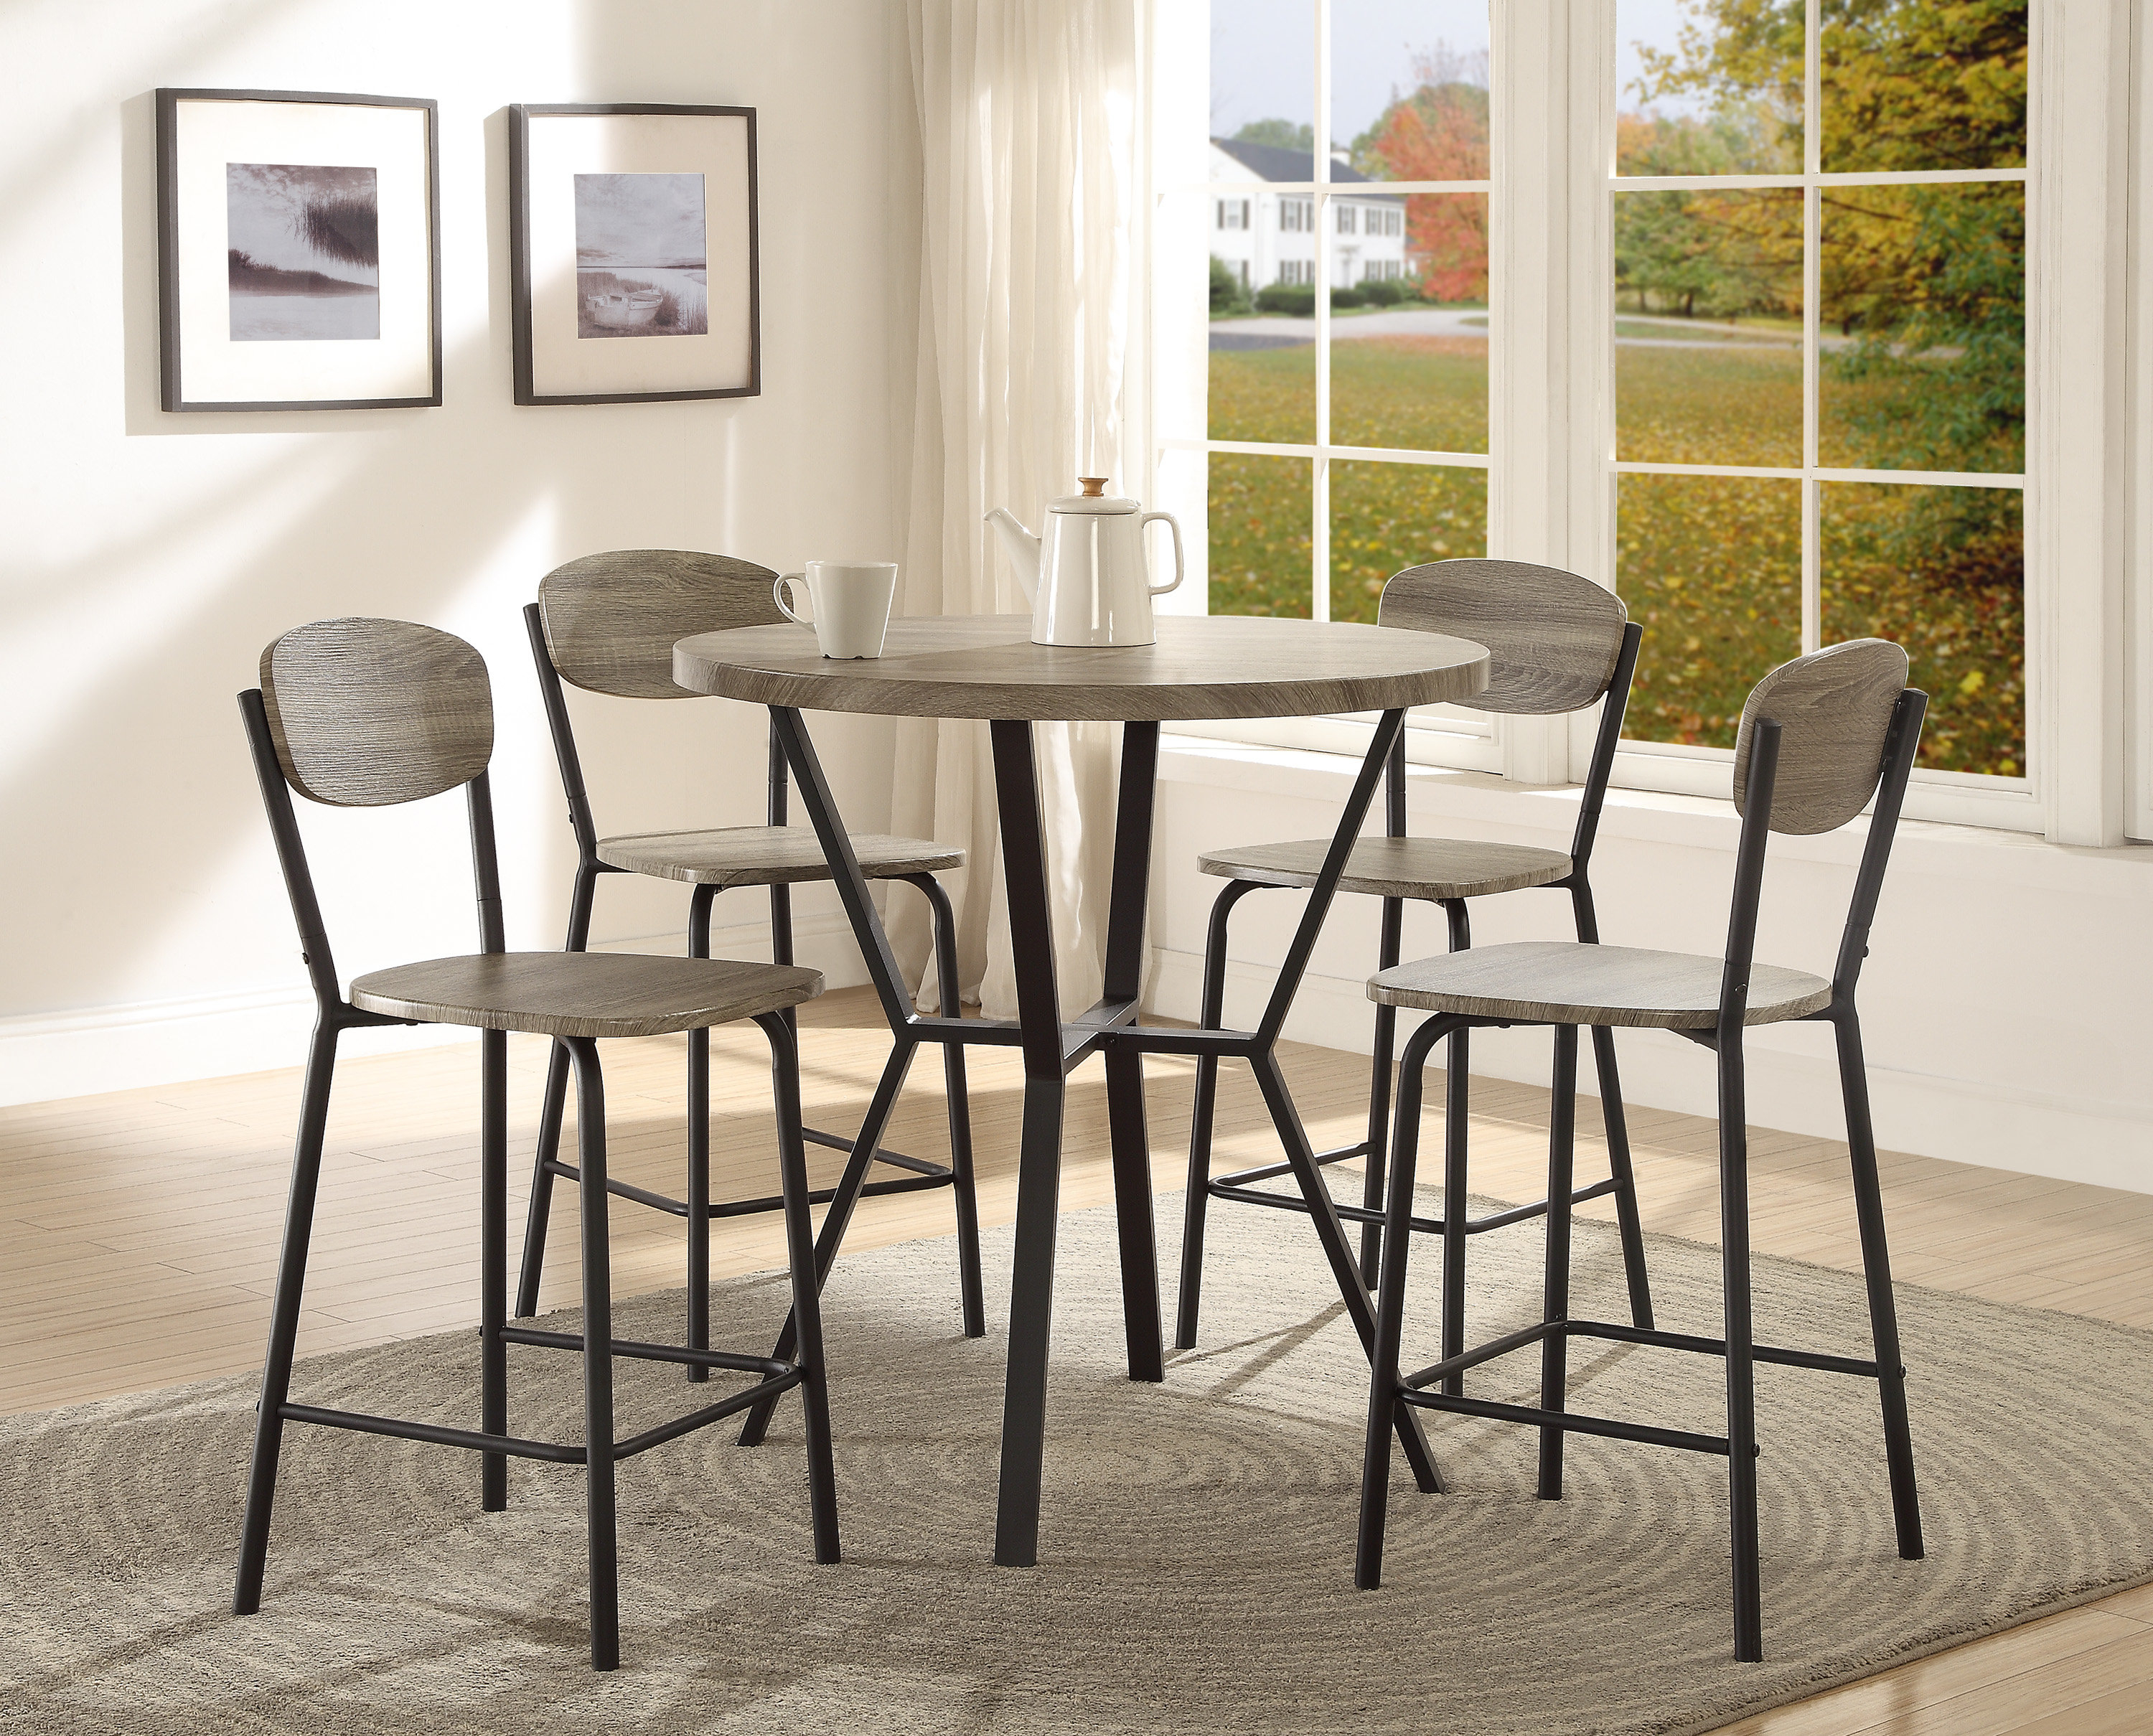 Felicia 5 Piece Counter Height Dining Set Regarding Most Recent Middleport 5 Piece Dining Sets (View 12 of 20)